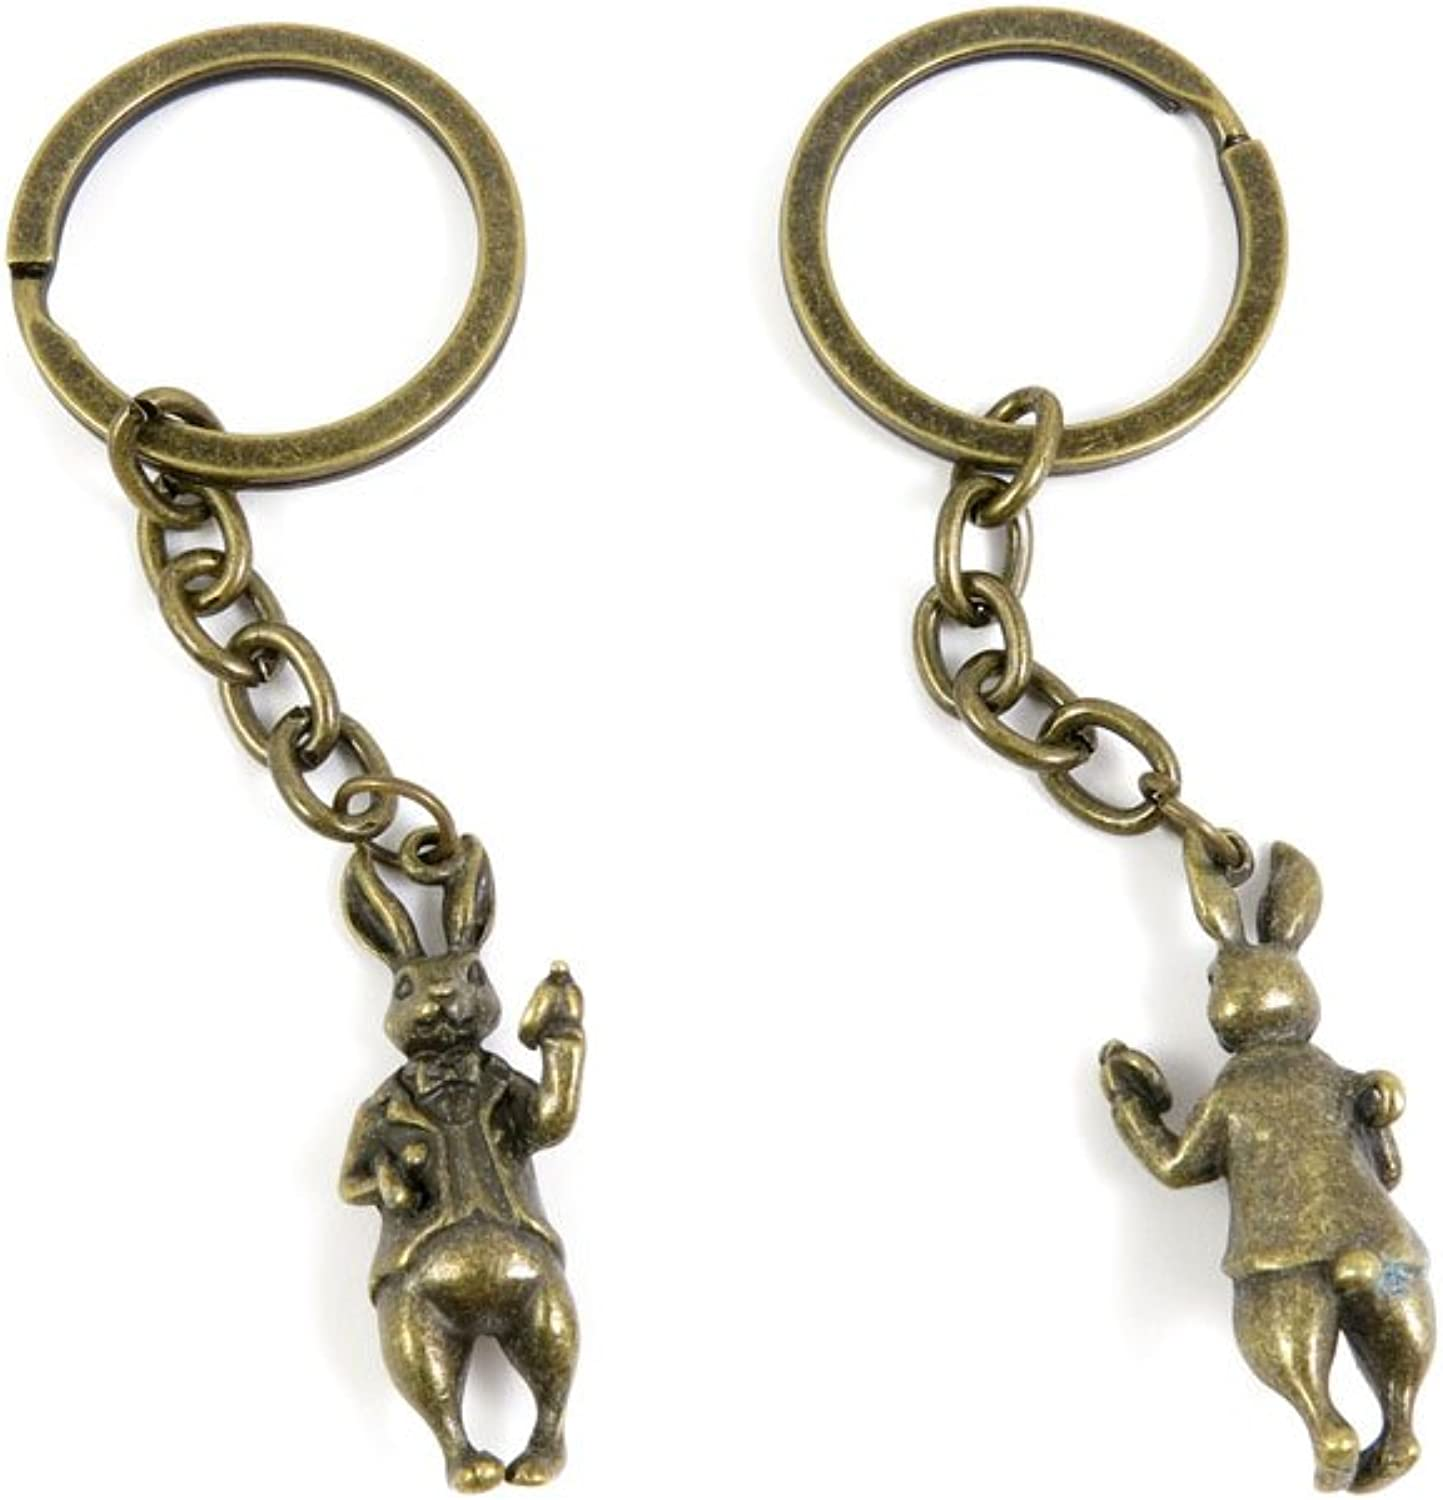 100 PCS Keyrings Keychains Key Ring Chains Tags Jewelry Findings Clasps Buckles Supplies L2QN6 Mr. Rabbit